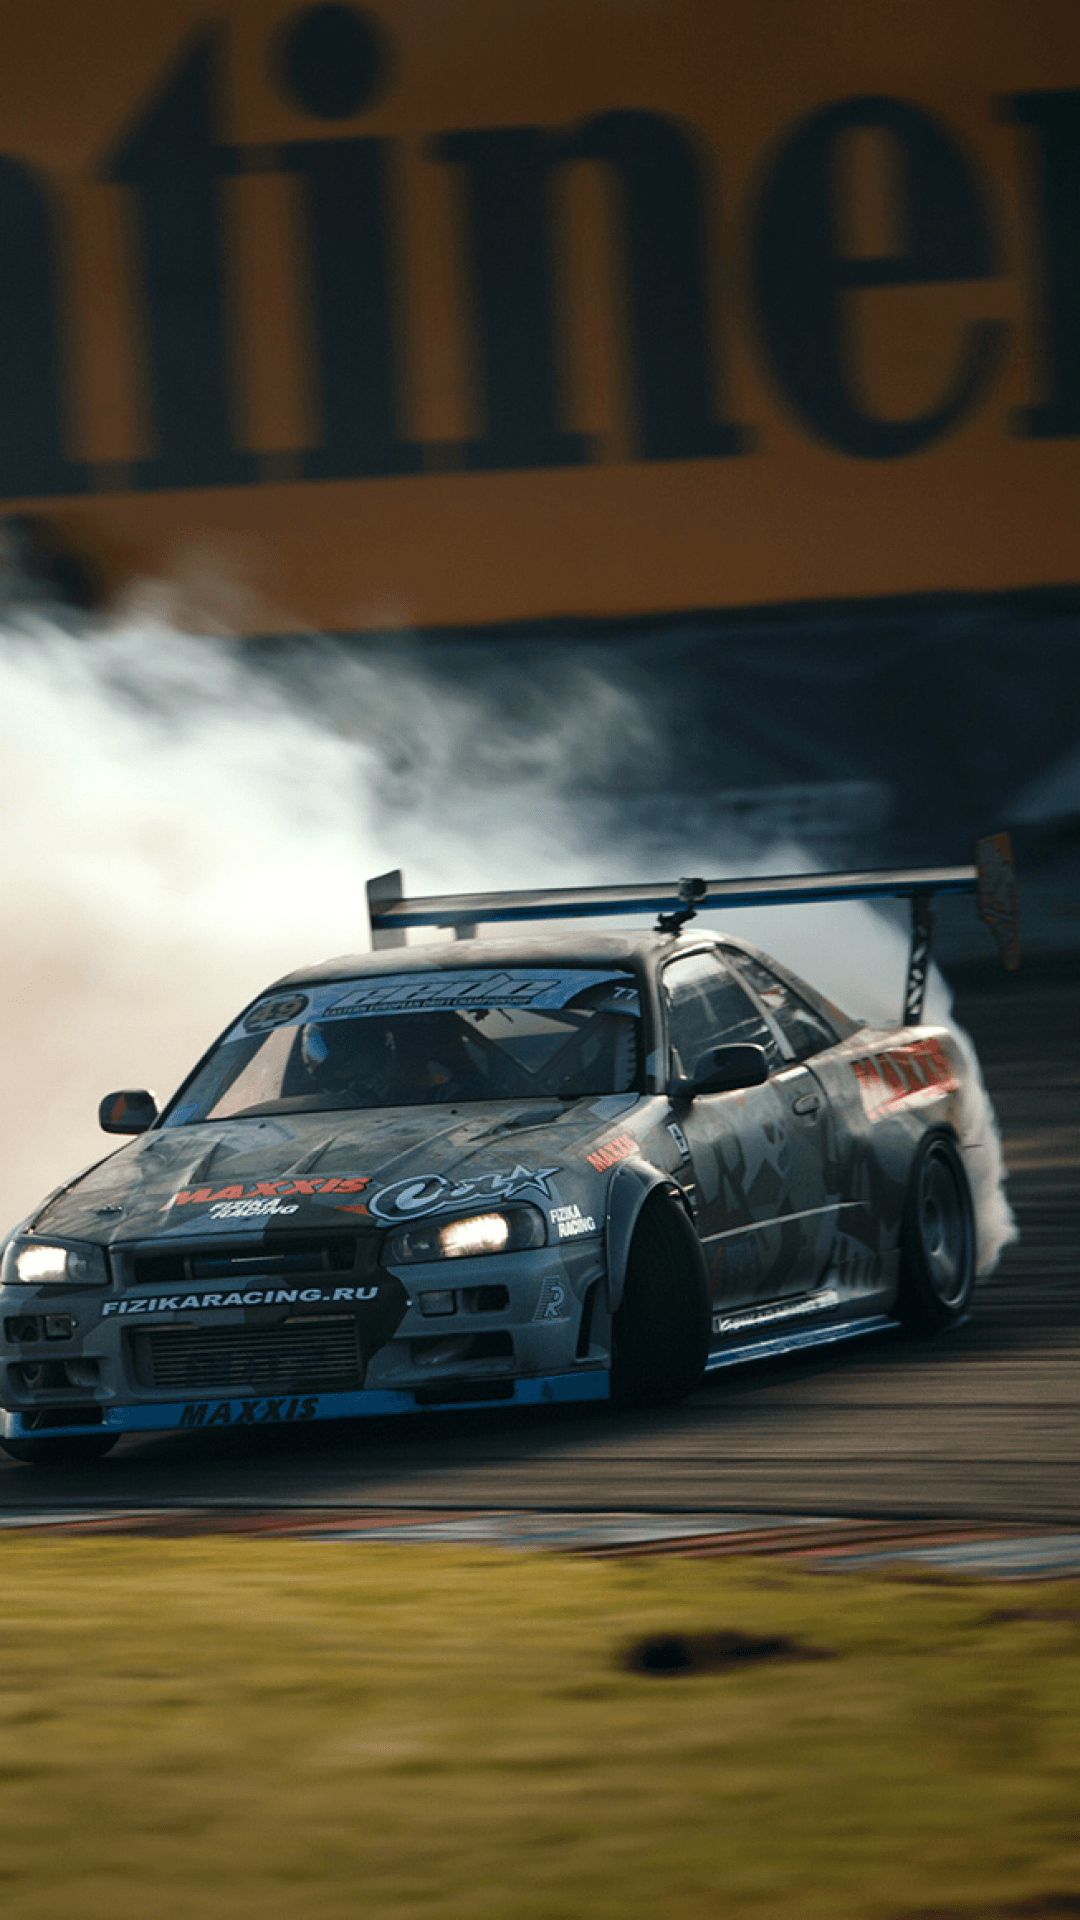 Jdm Cars Wallpapers Top Free Jdm Cars Backgrounds